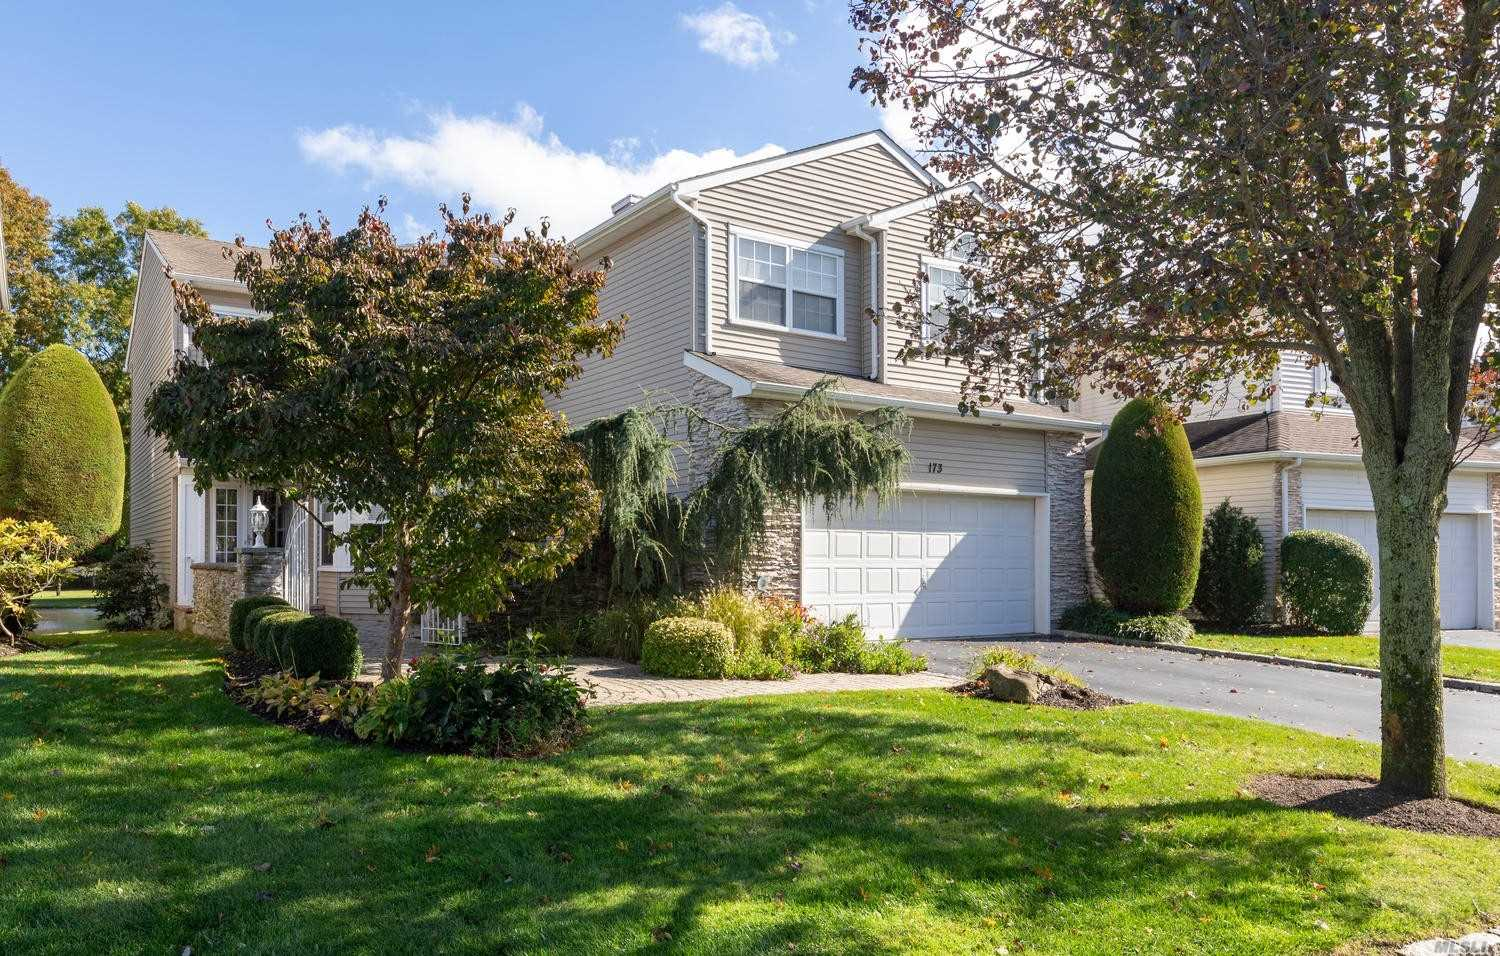 Property for sale at 173 Windwatch Dr, Hauppauge,  NY 11788